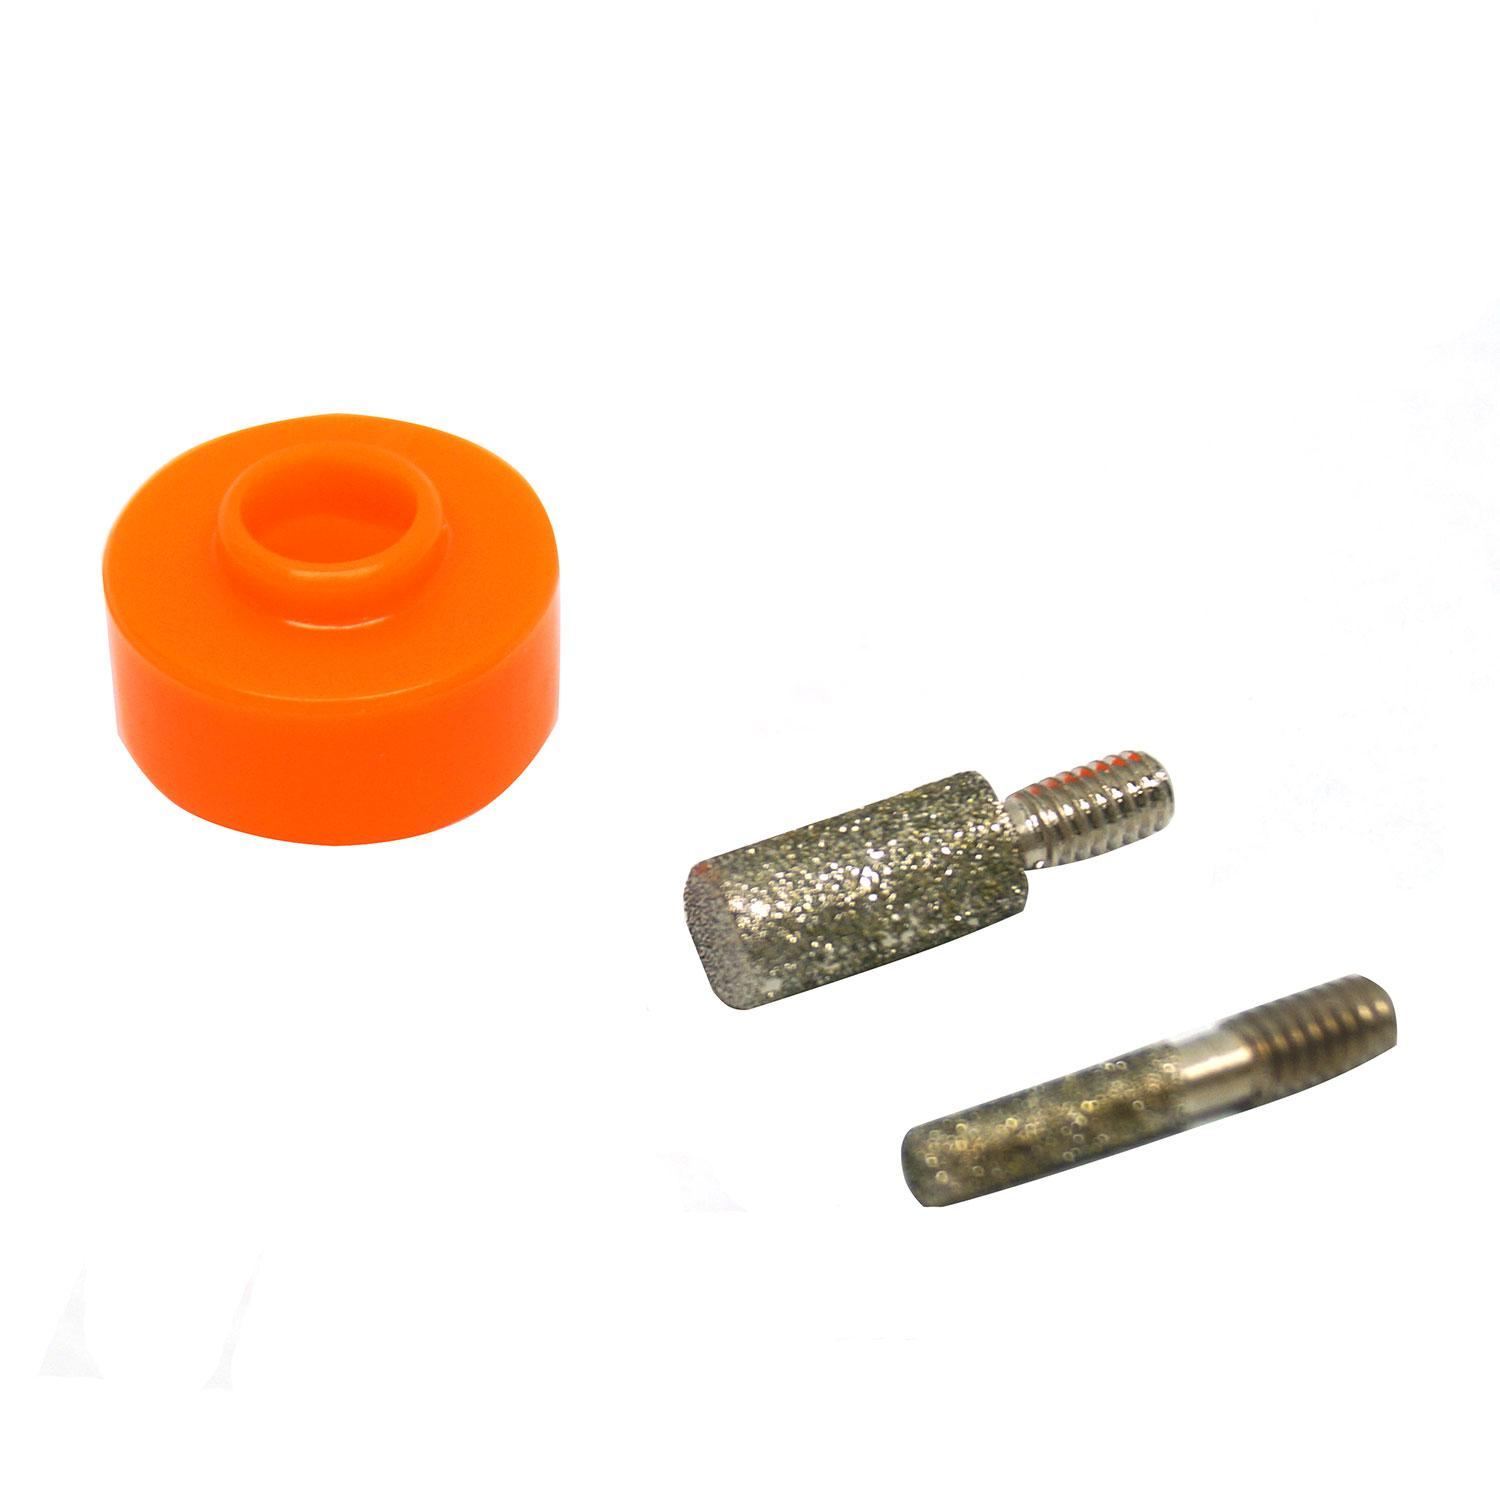 1/4 And 1/8 Mini G Bit System With Shaft Water Seal